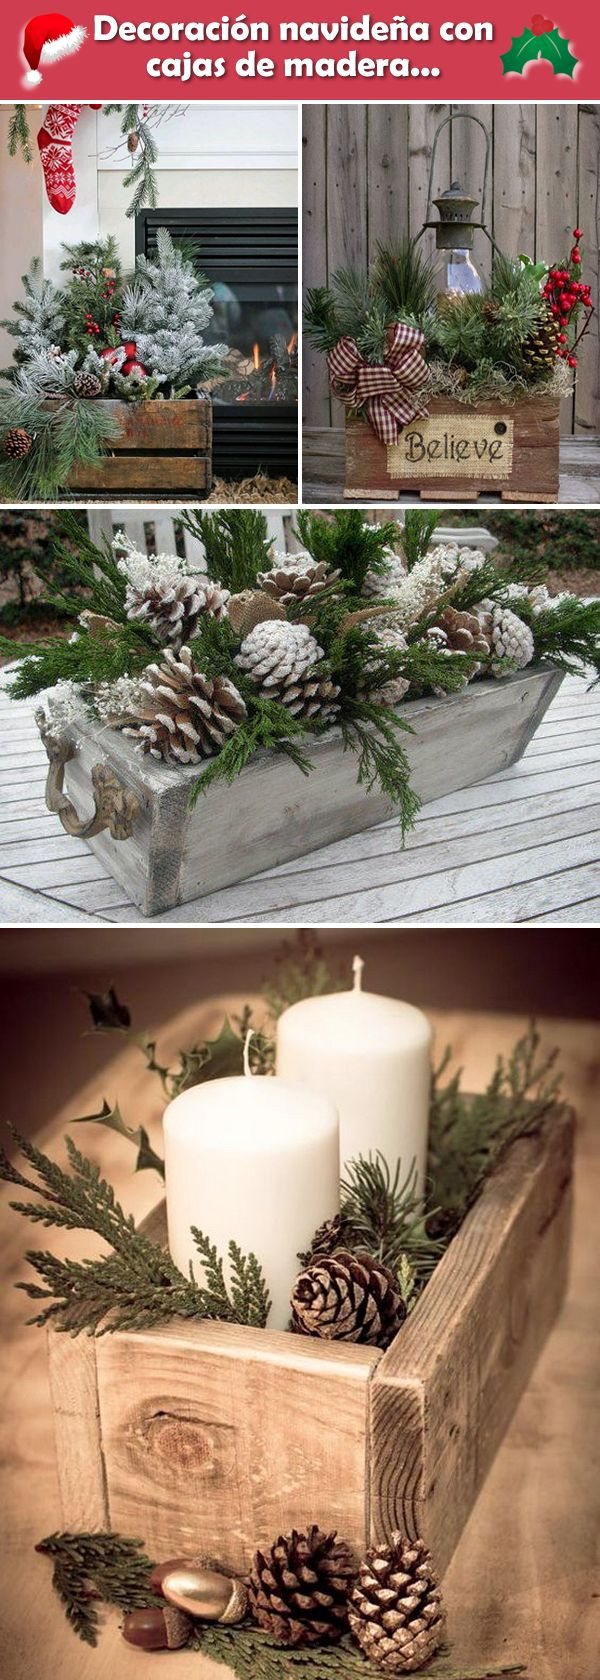 M s de 25 ideas incre bles sobre caja en pinterest caja for Decoracion navidena jardin